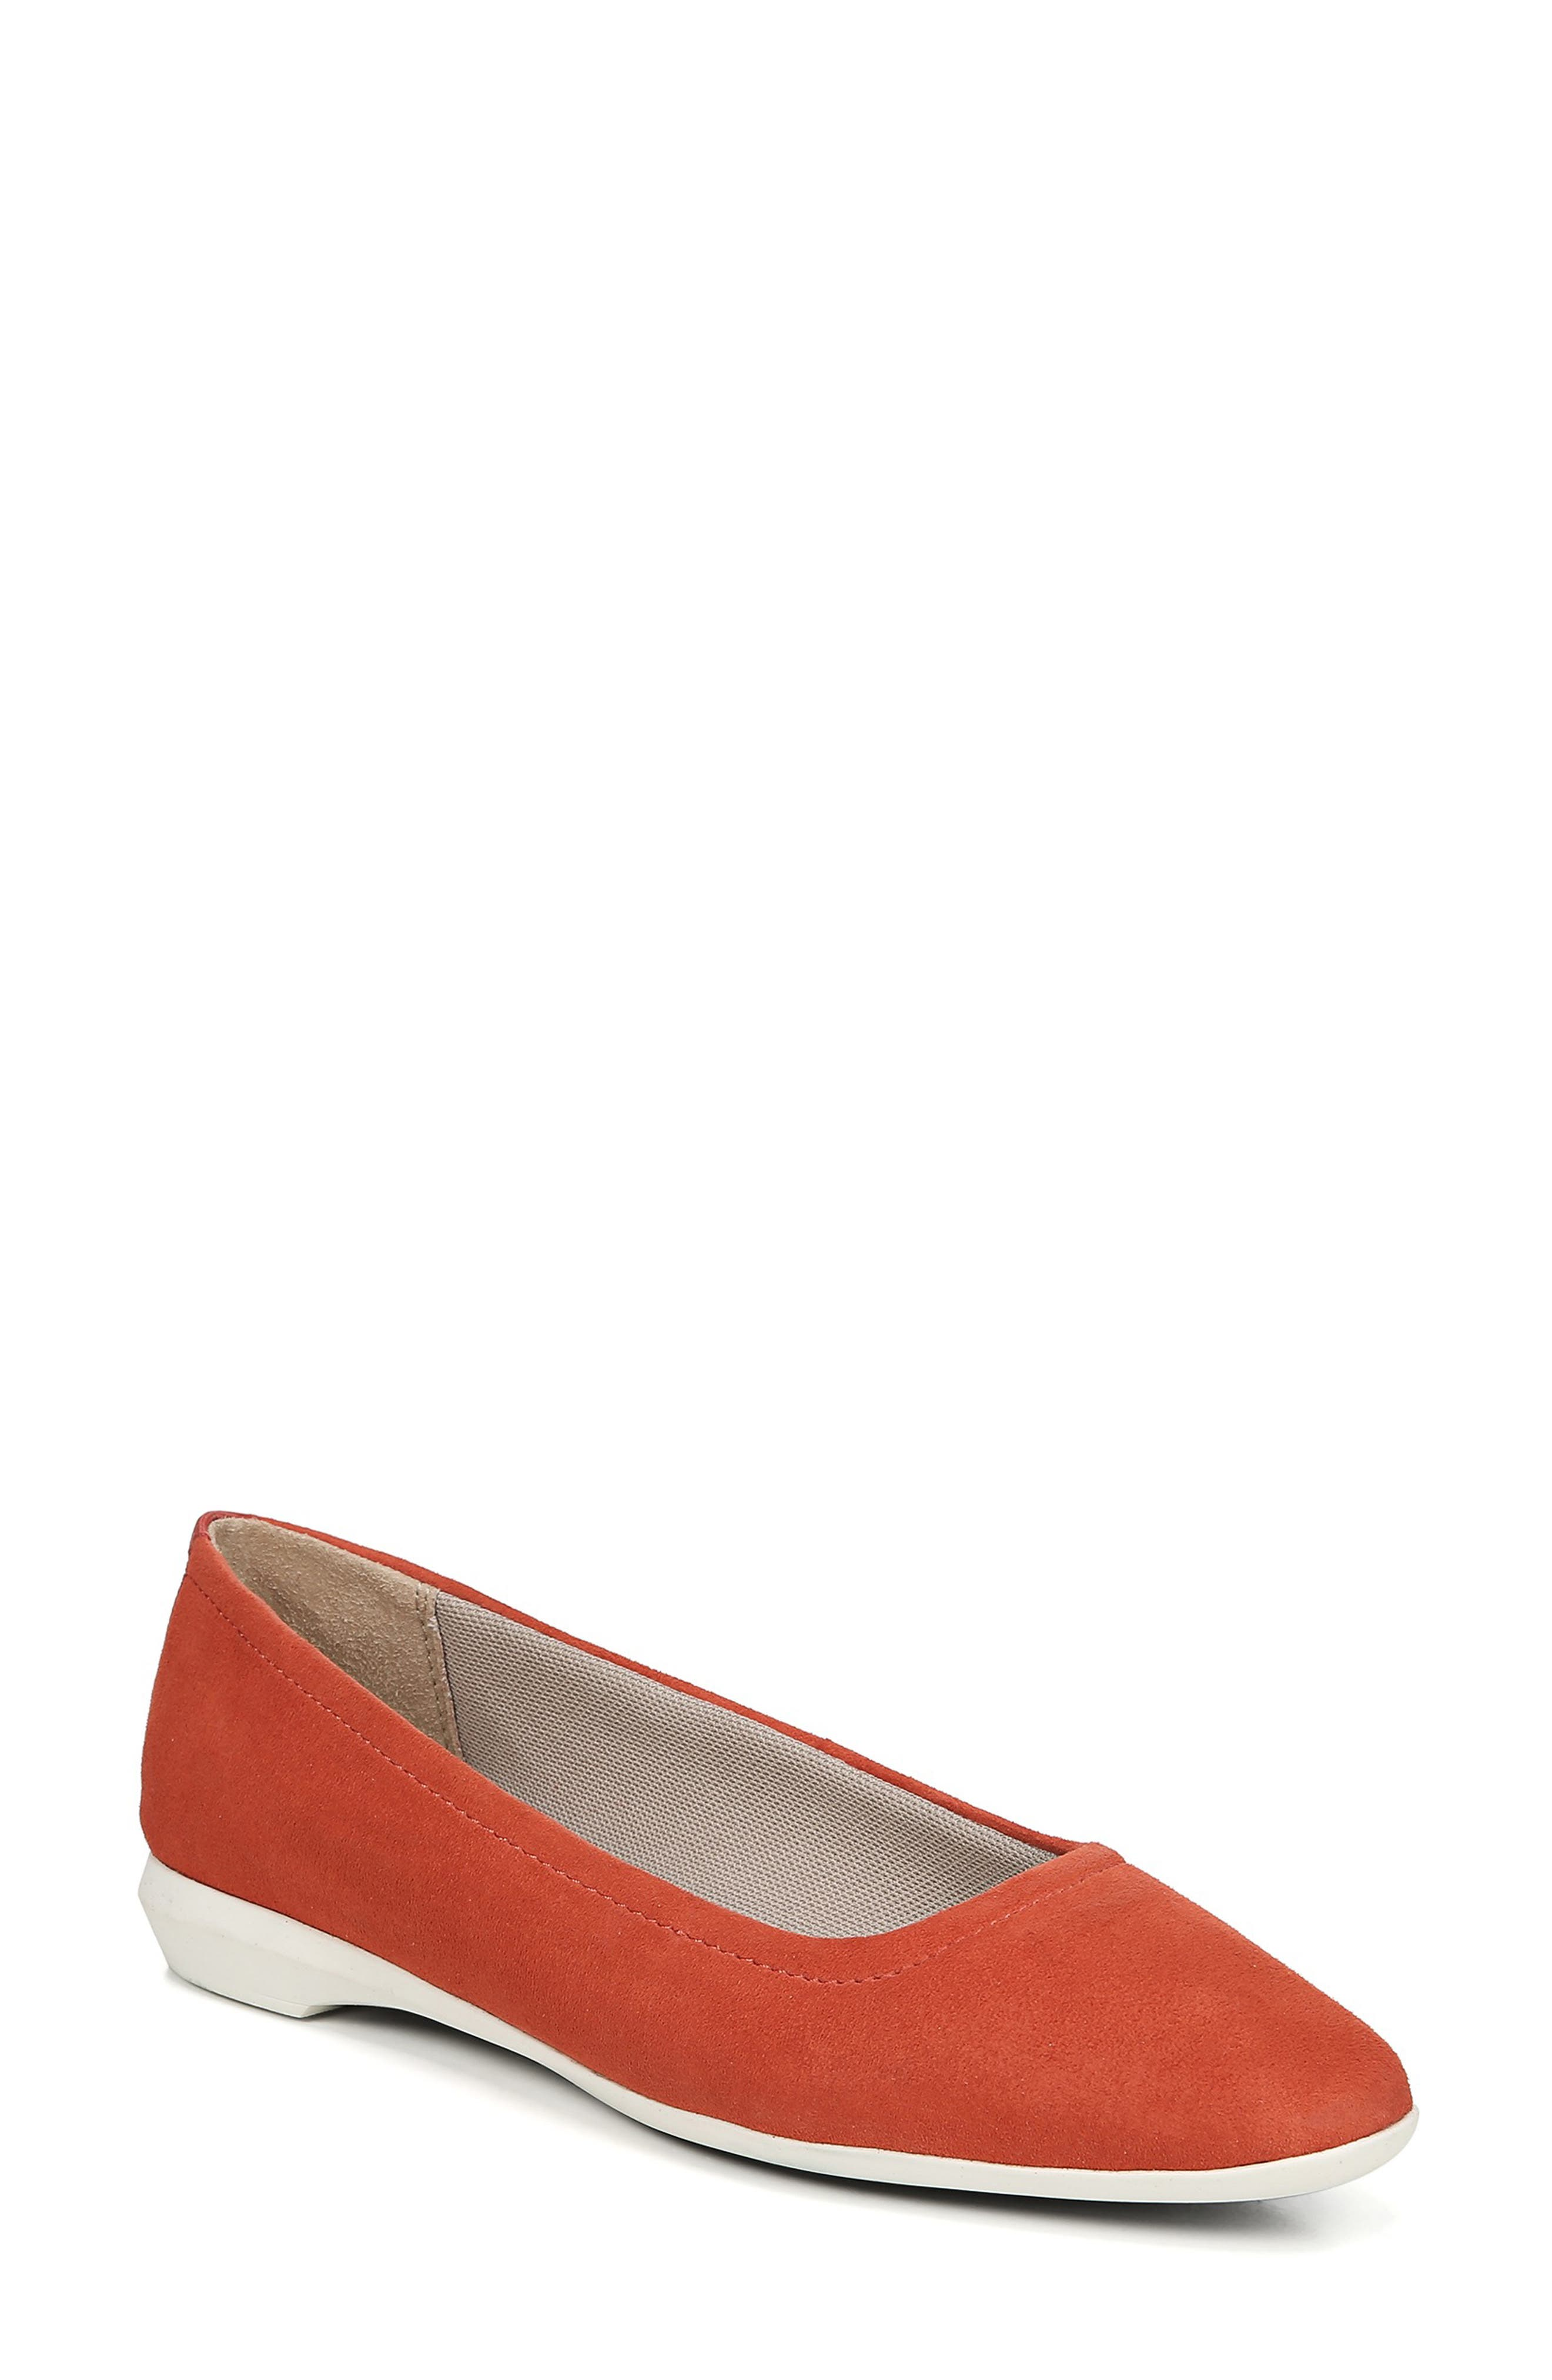 Naturalizer Alya Flat, Orange